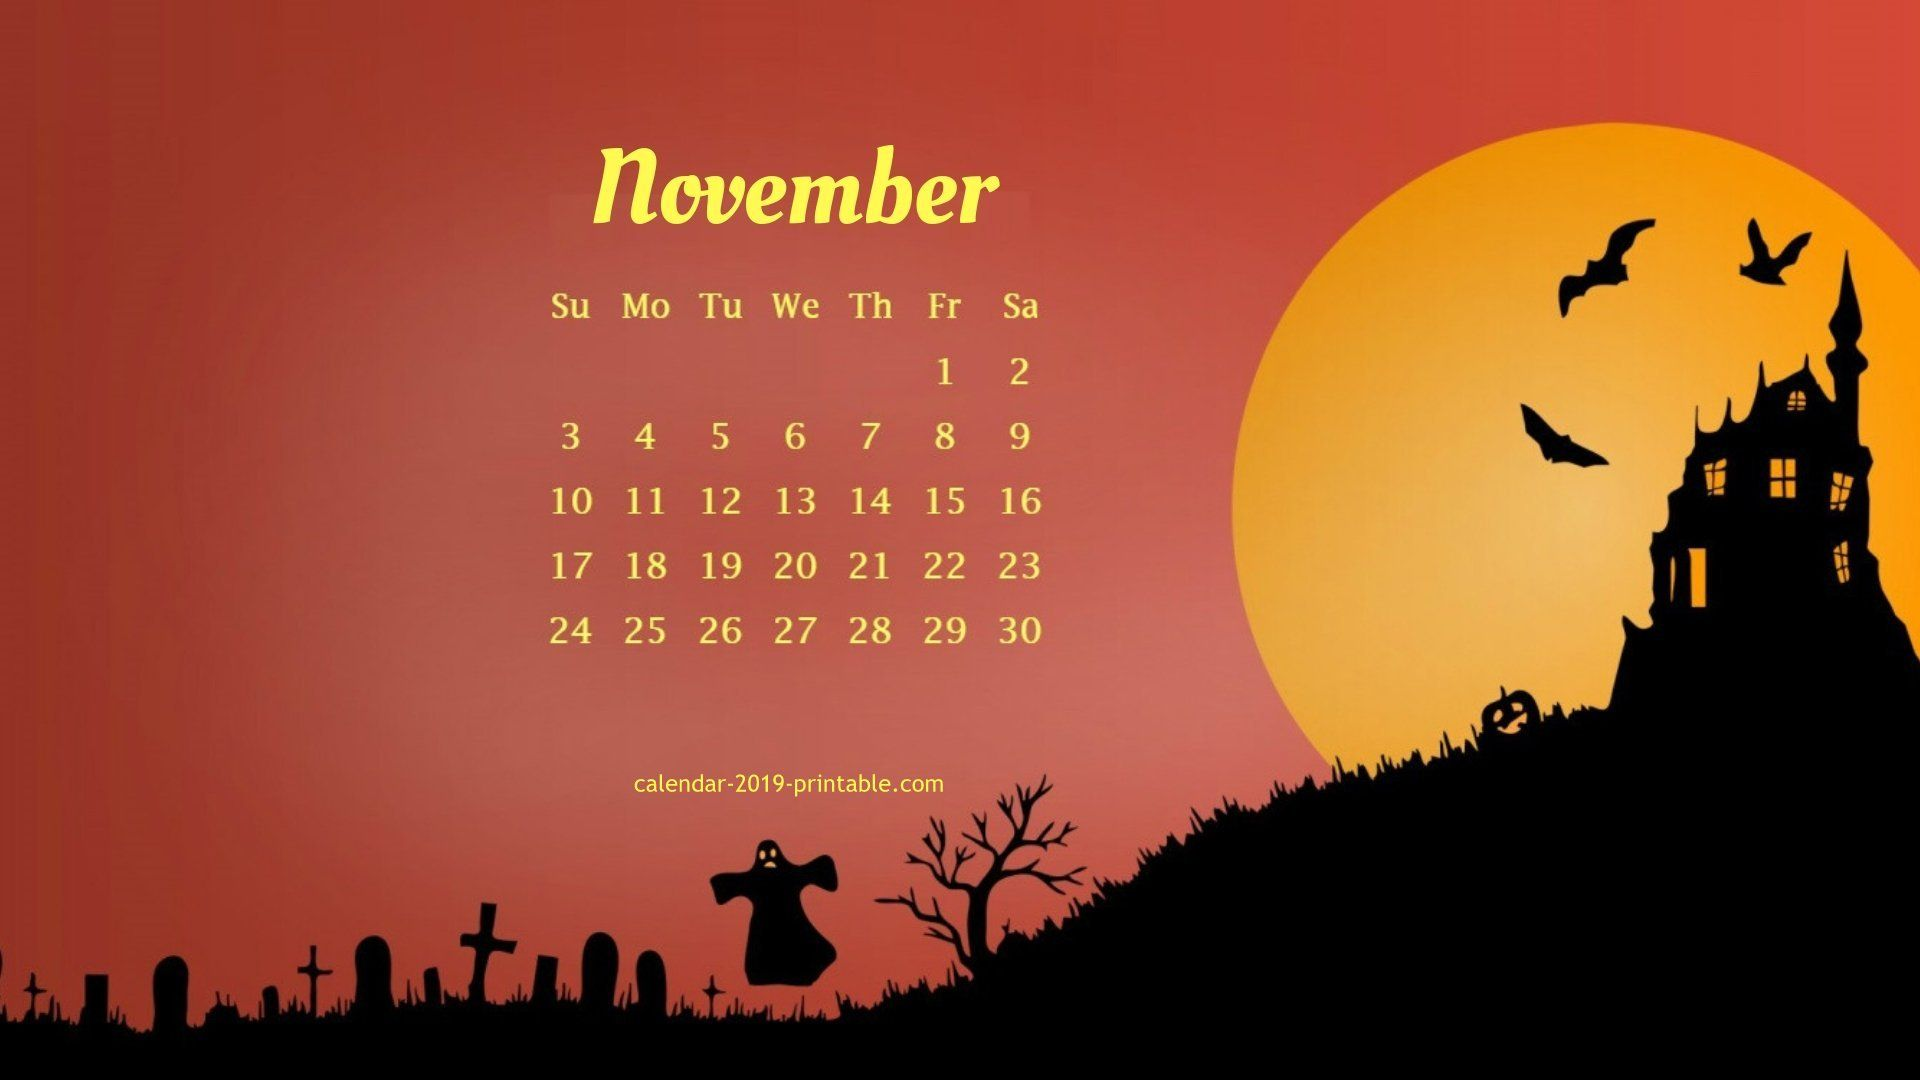 november 2019 unique calendar wallpaper in 2019 Desktop calendar 1920x1080